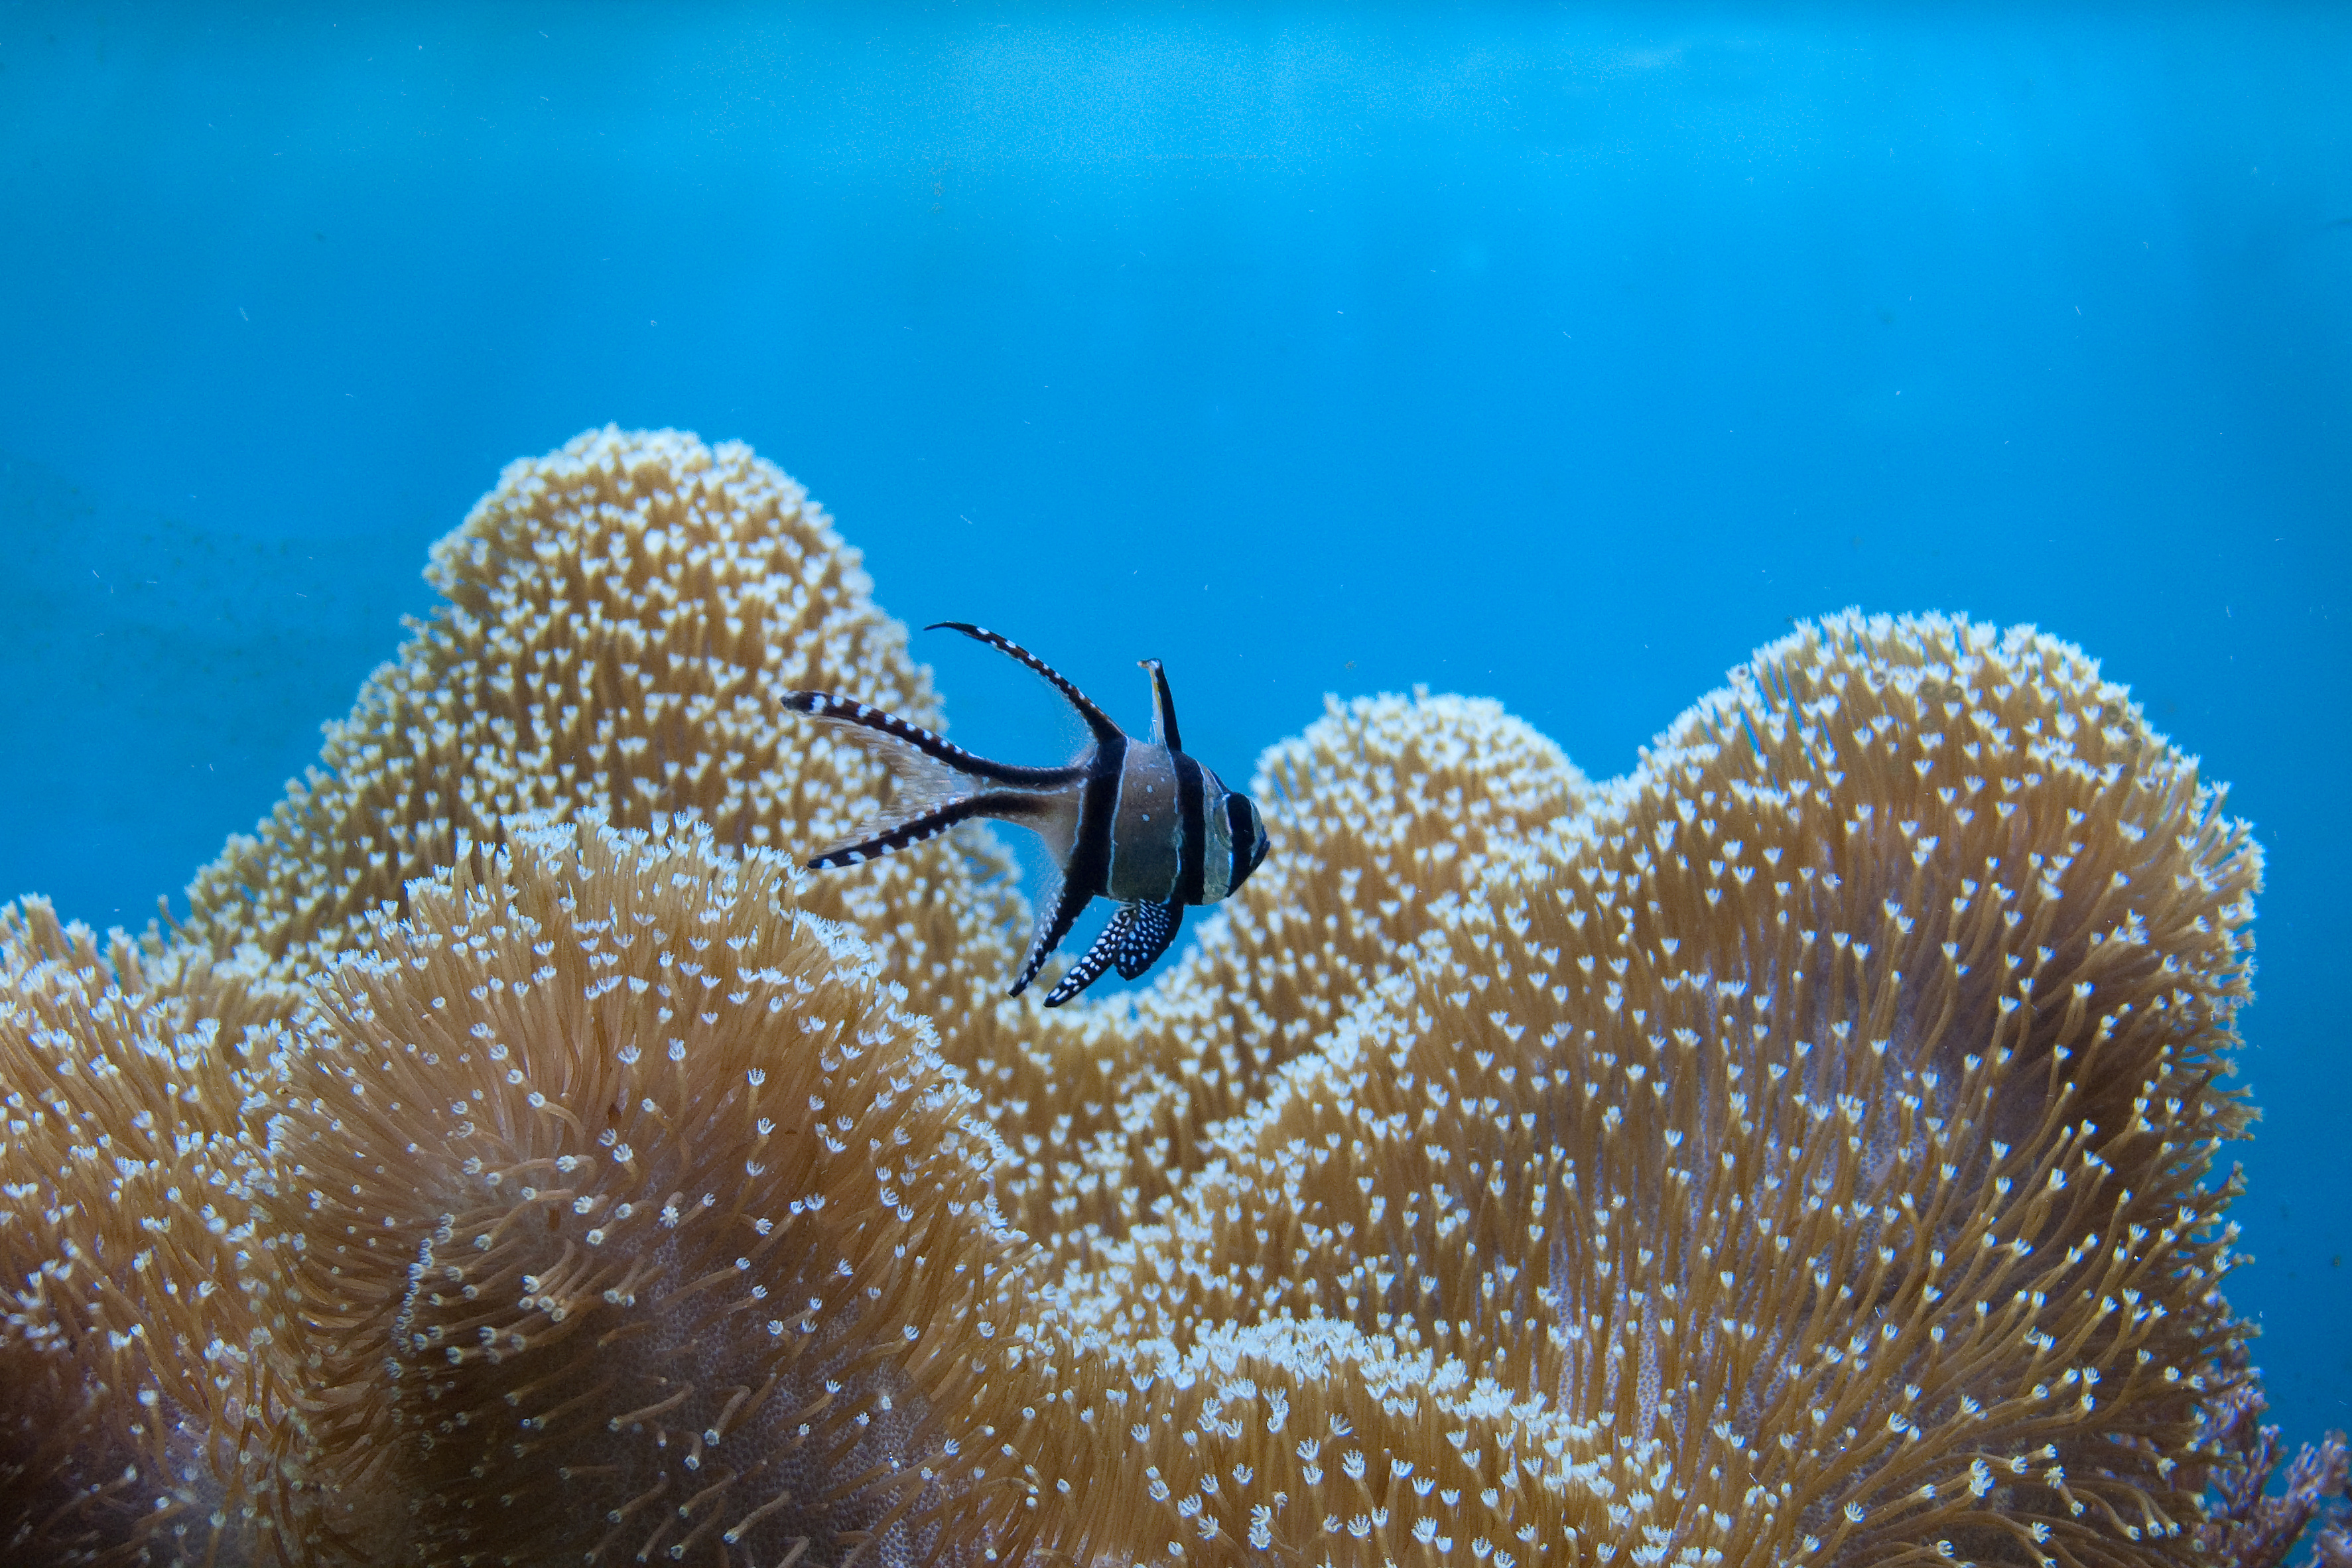 life of a fish in sea Commentary and archival information about fish and other marine life from the  new york times  warmer oceans can bleach sea anemones, not just coral.